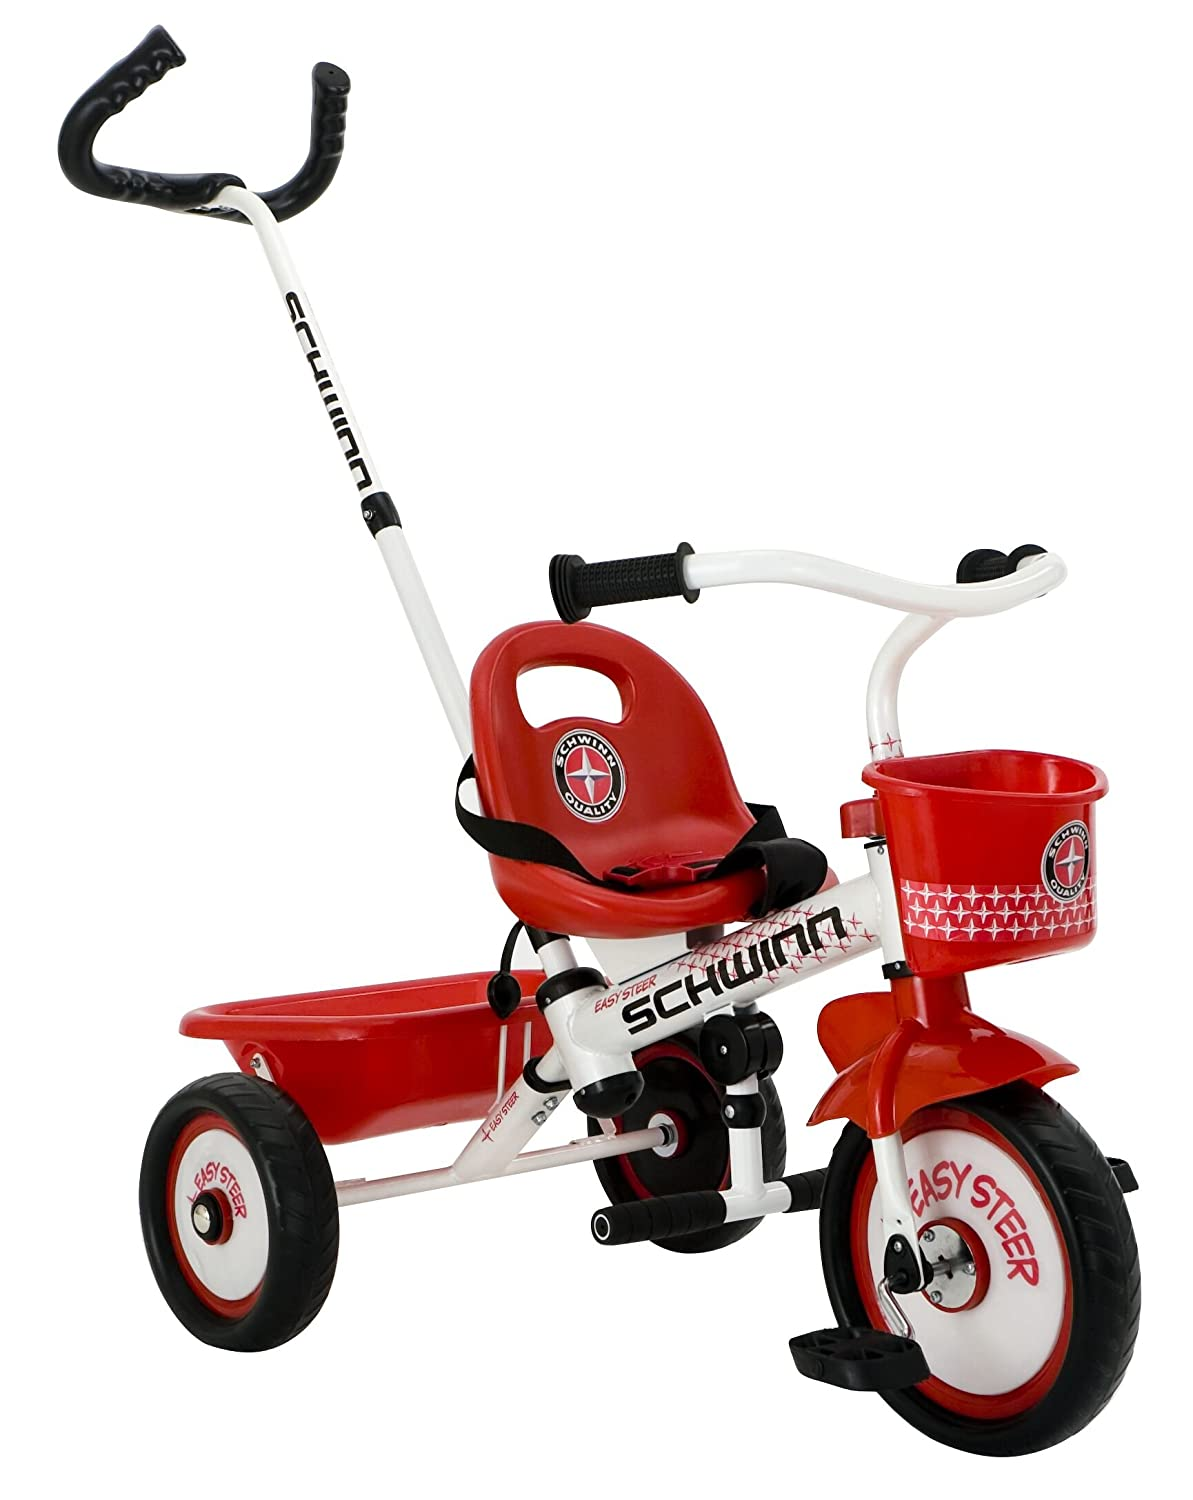 Schwinn Easy Steer Tricycle, Red/White $59